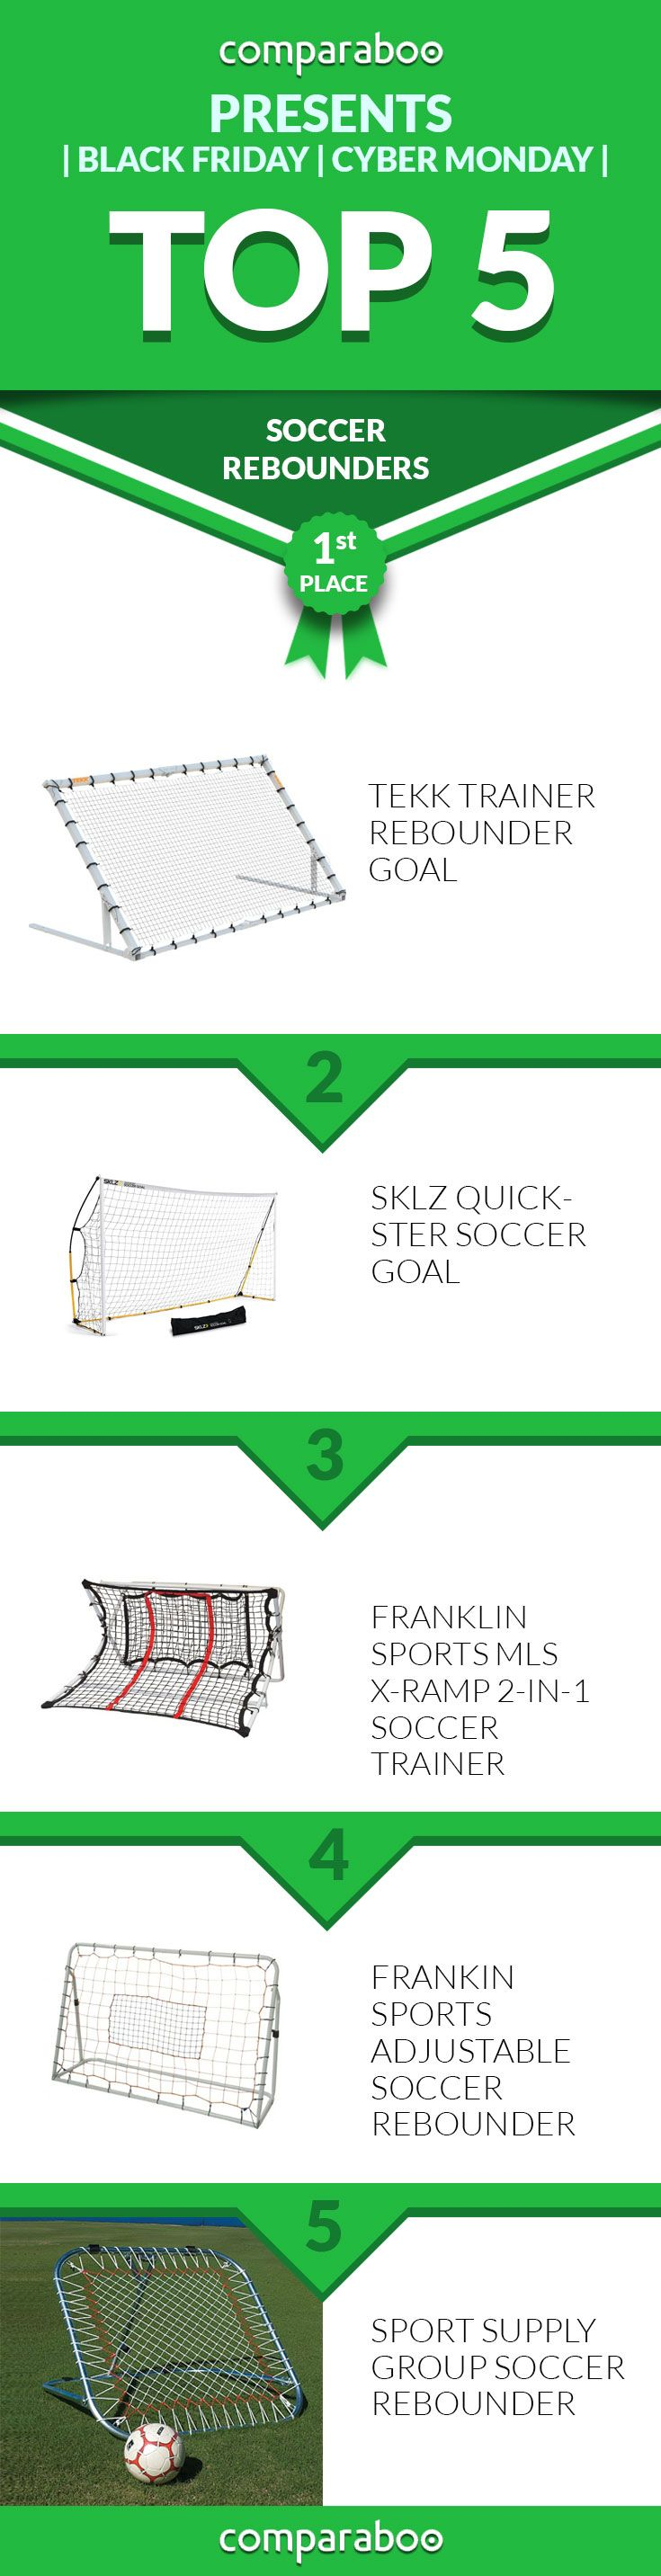 Chart: Top 5 Soccer Rebounders of 2015 www.comparaboo.com   @comparaboo